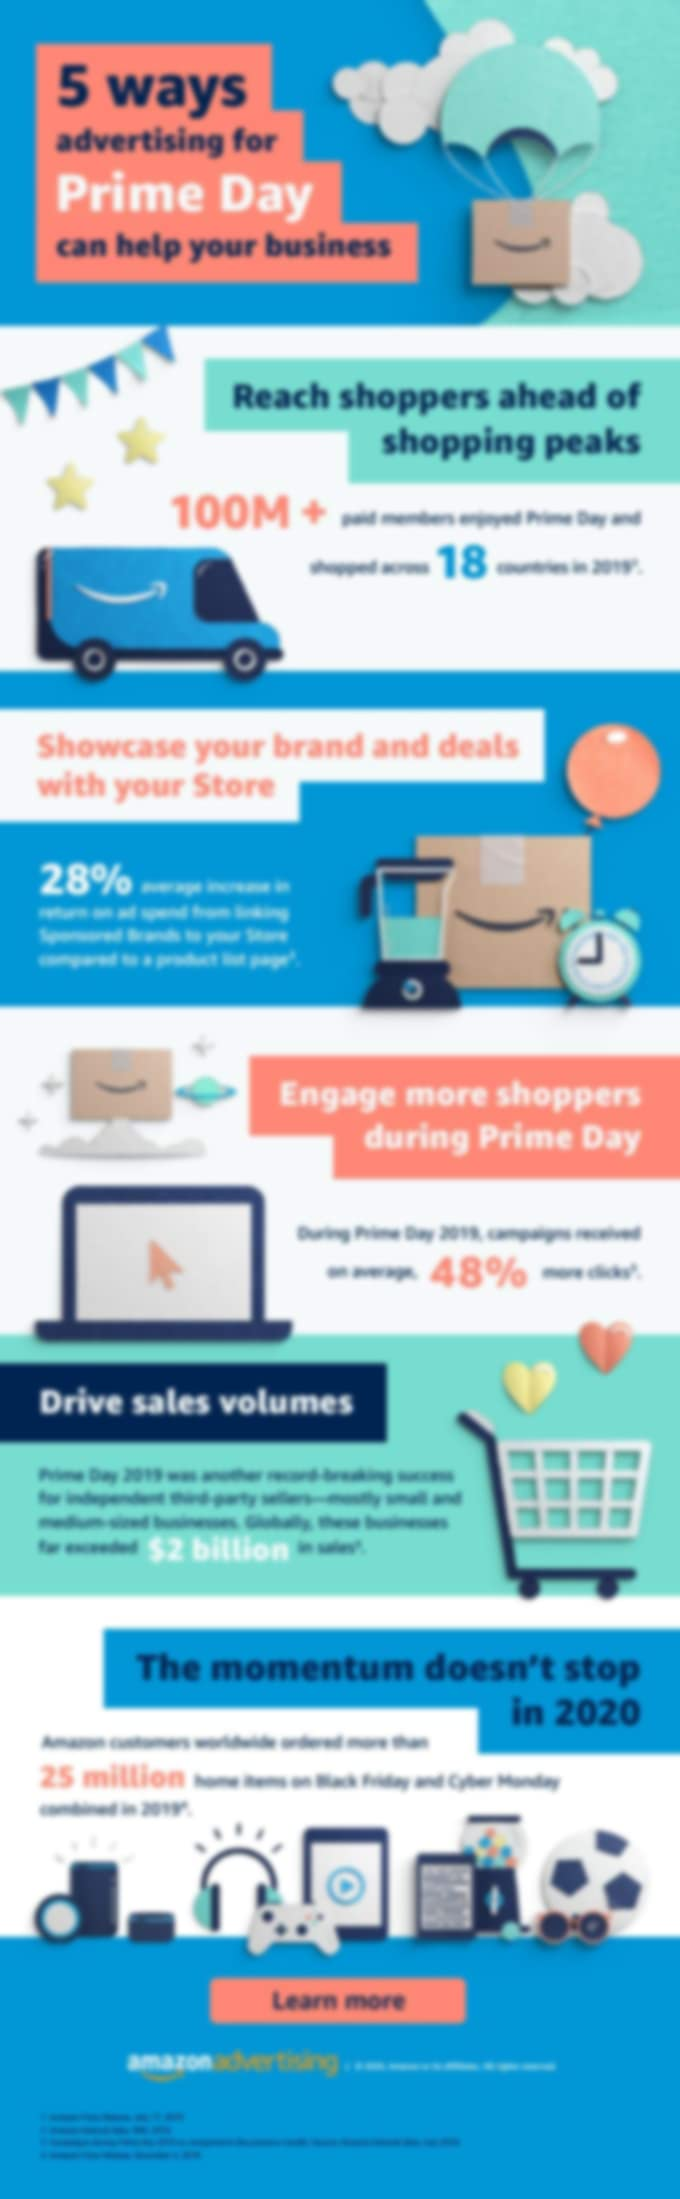 2019 Prime Day insights and data points to prepare for the big event